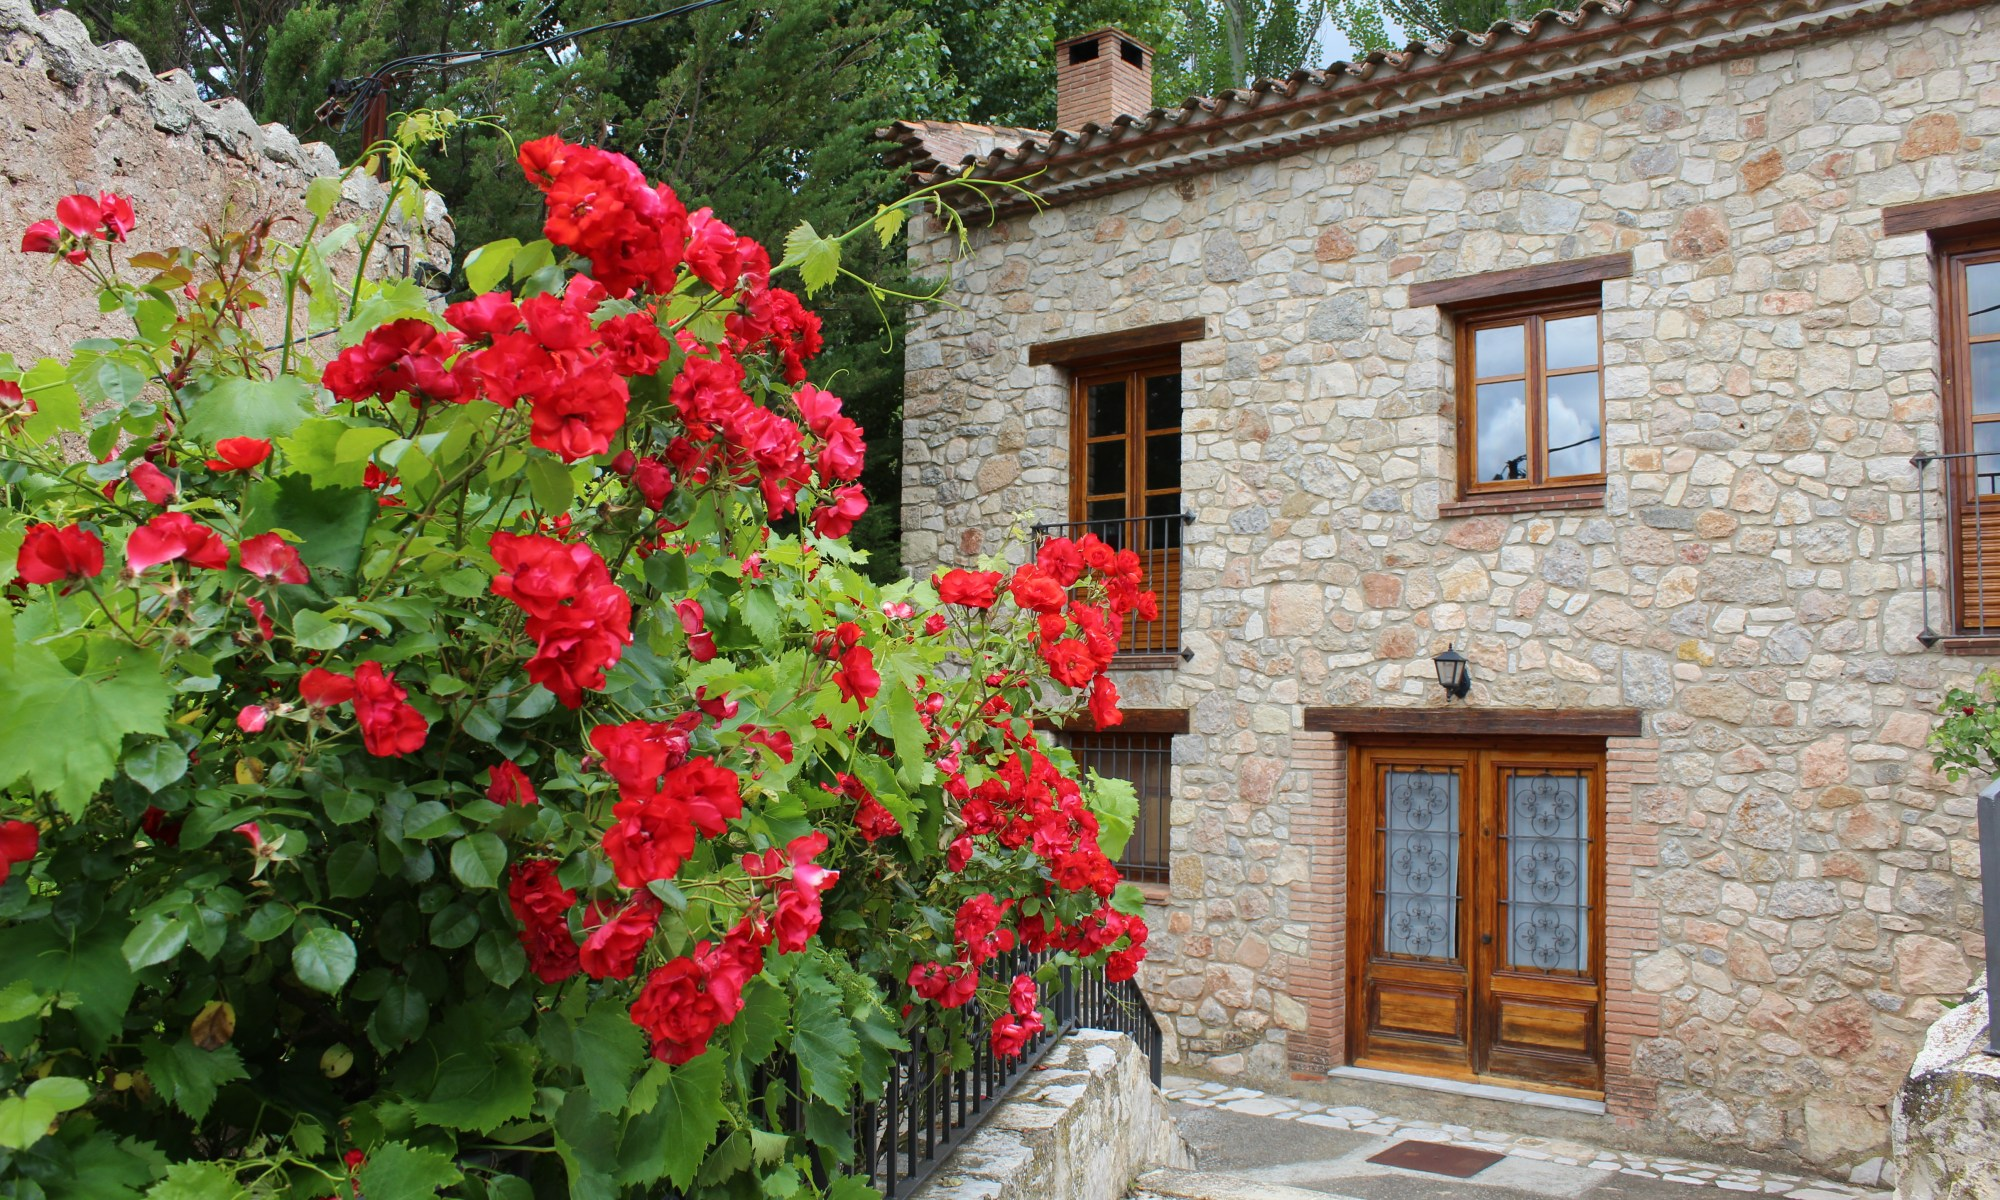 Beautiful stone house with red roses in Farena